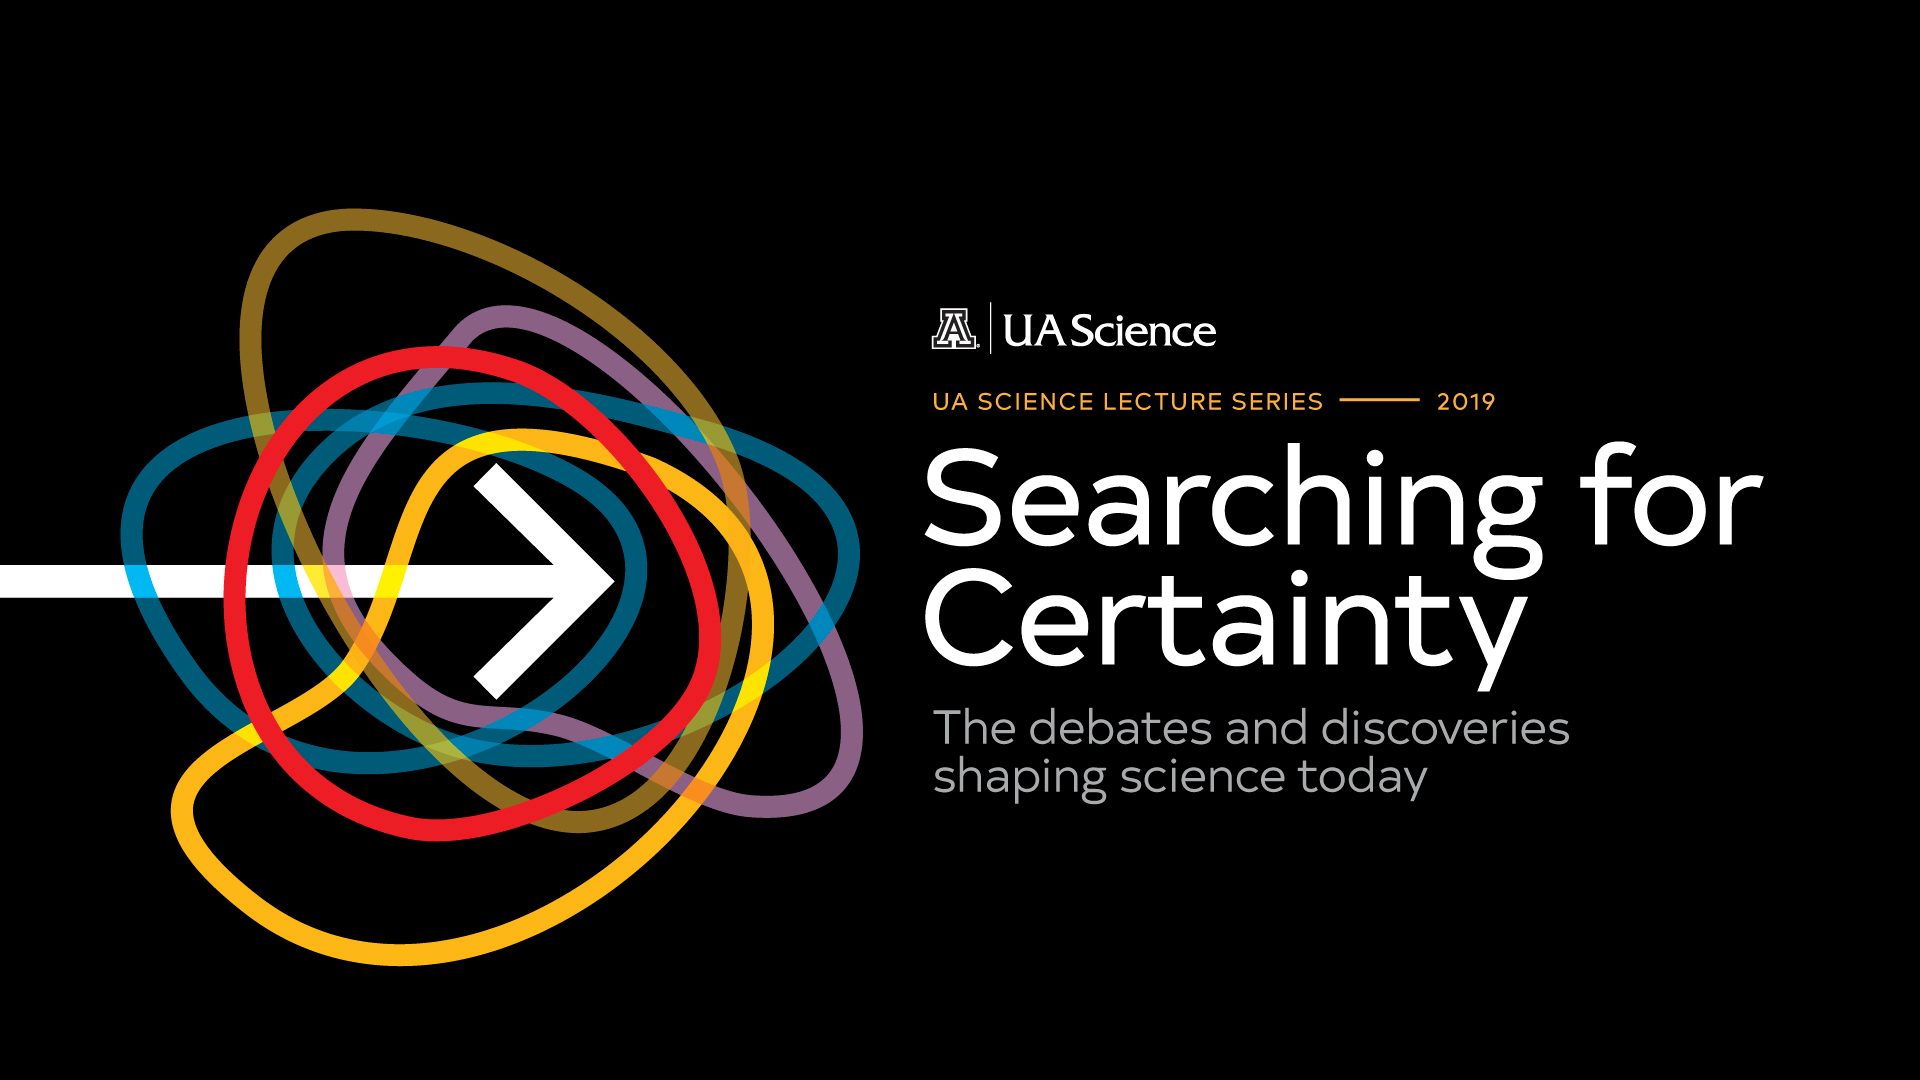 UA Science Lecture Series Searching for Certainty